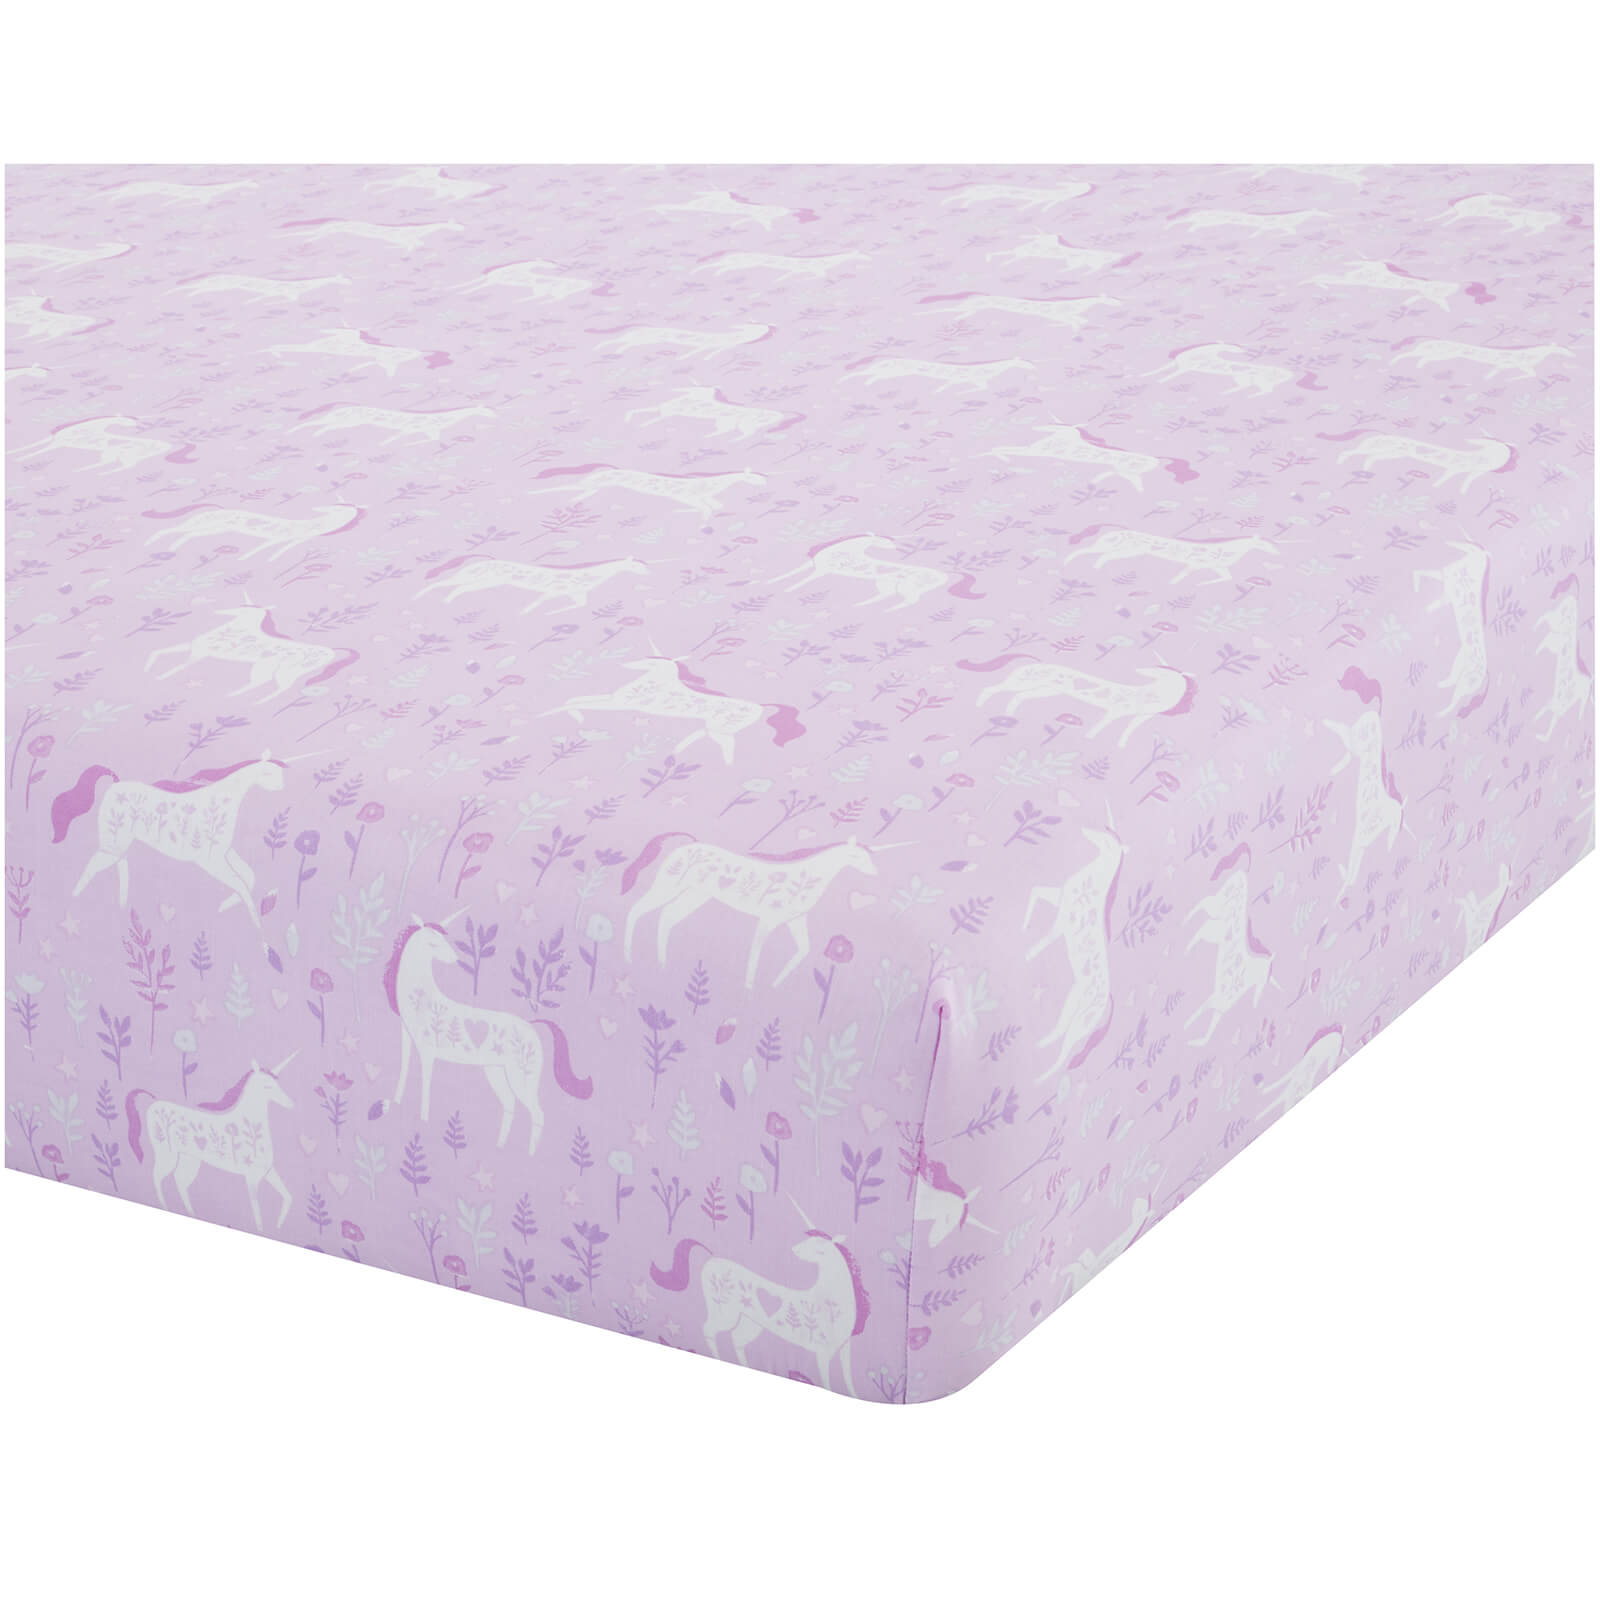 Catherine Lansfield Folk Unicorn Fitted Sheet - Pink